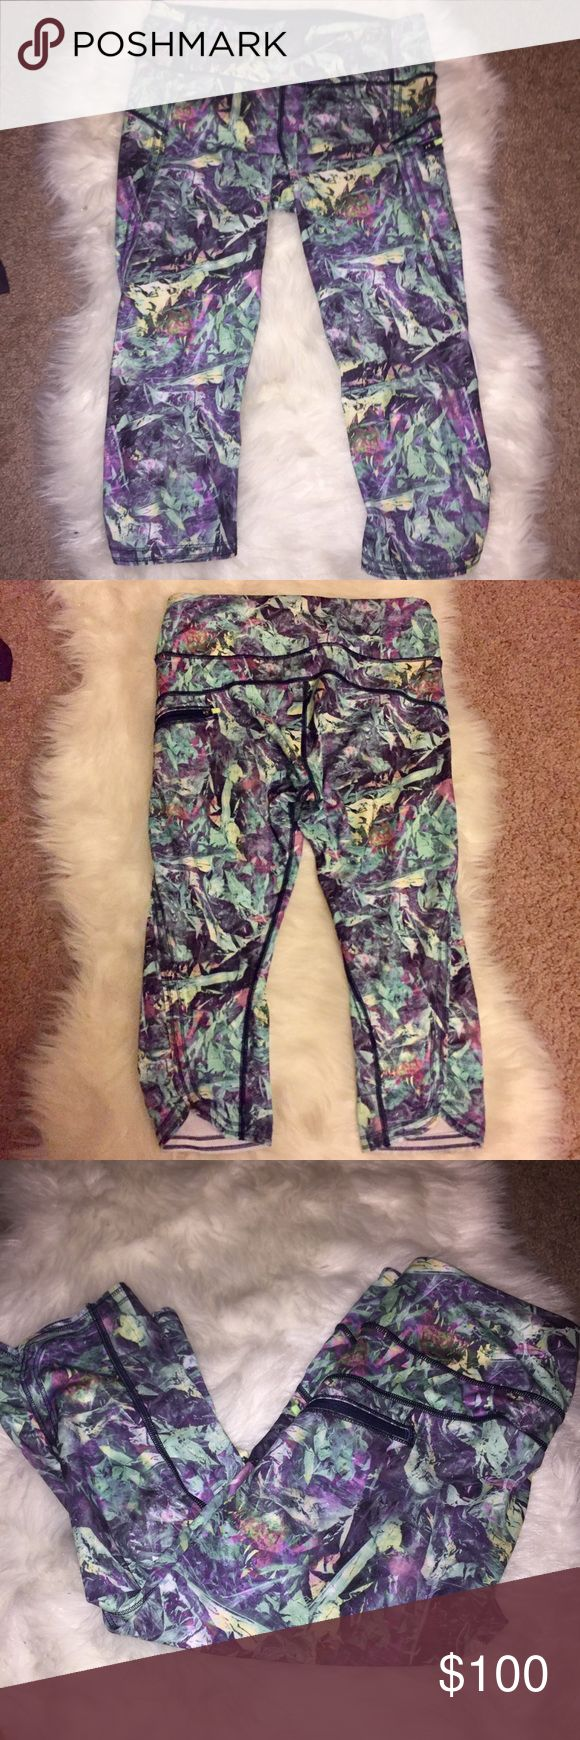 Lululemon Athletica Run Inspire Crop Pants Size 6 Lululemon Athletica Run Inspire Crop Pants. Size 6. Rare geometric mint, navy, white and purple print. NWOT. Only tried on. Perfect mint condition! lululemon athletica Pants Ankle & Cropped